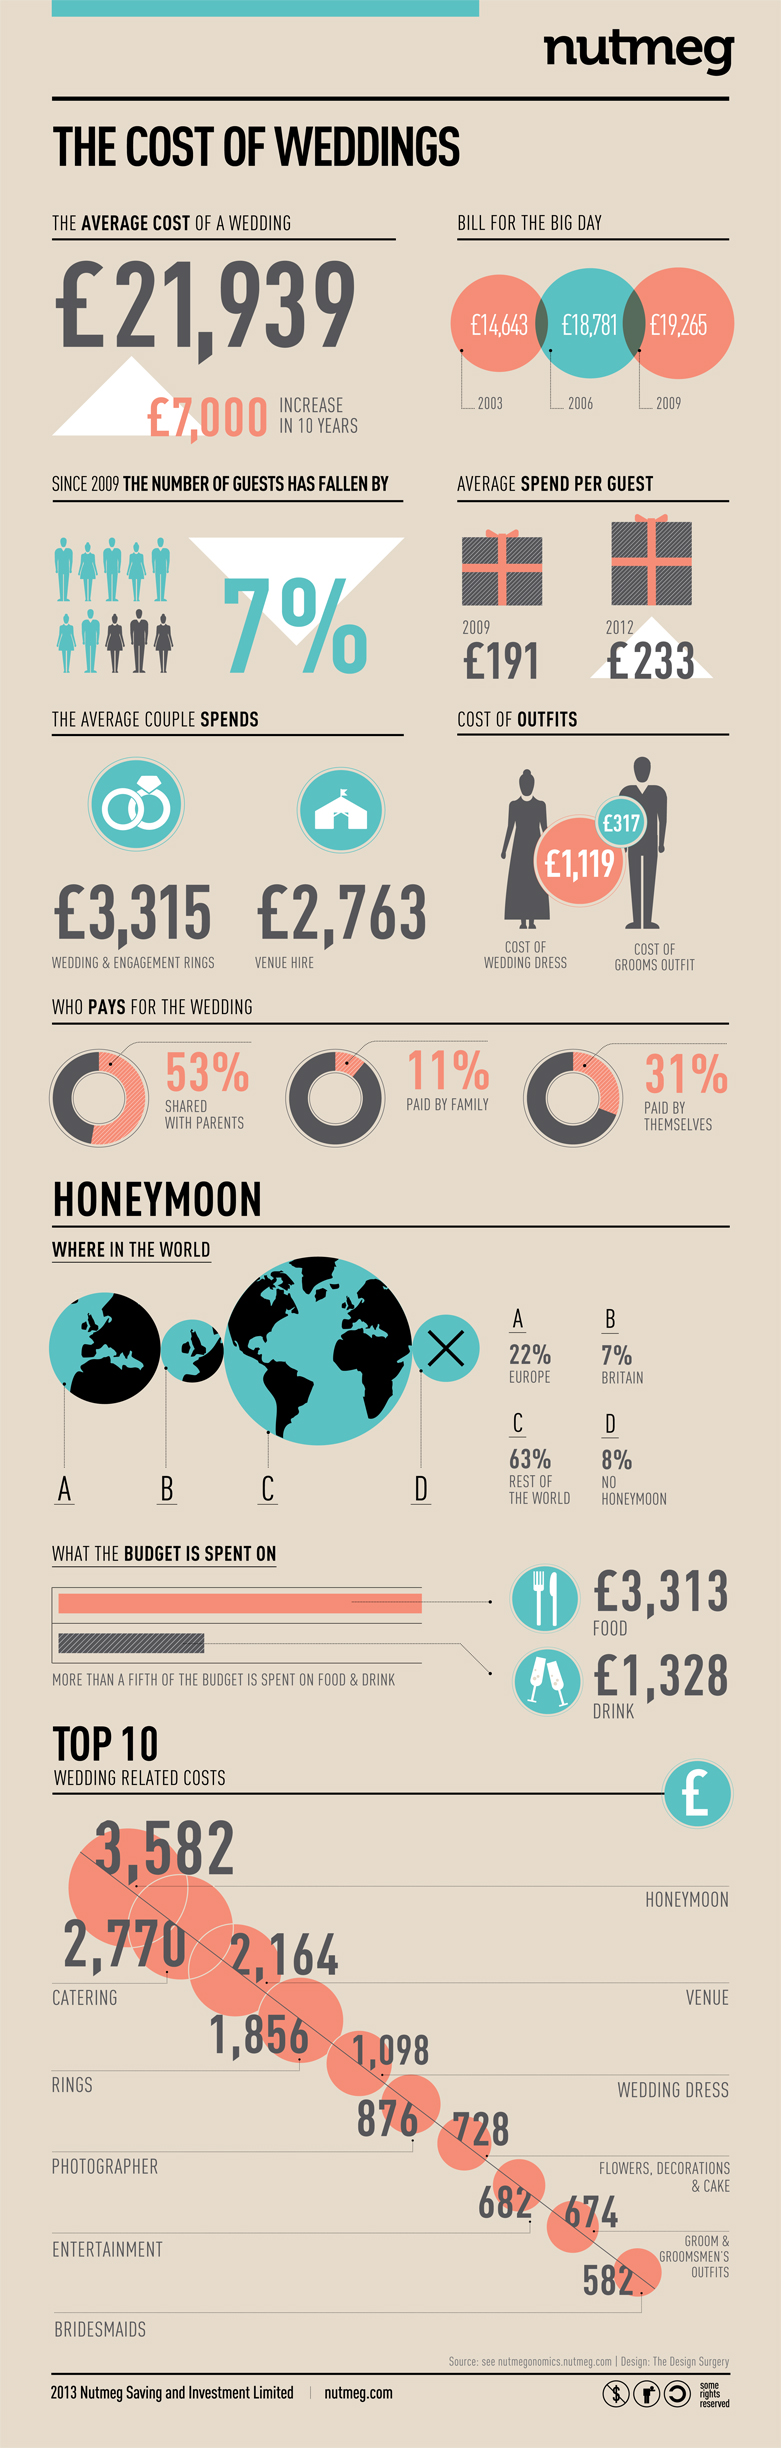 Wedding Budget: The Real Cost of Your Wedding